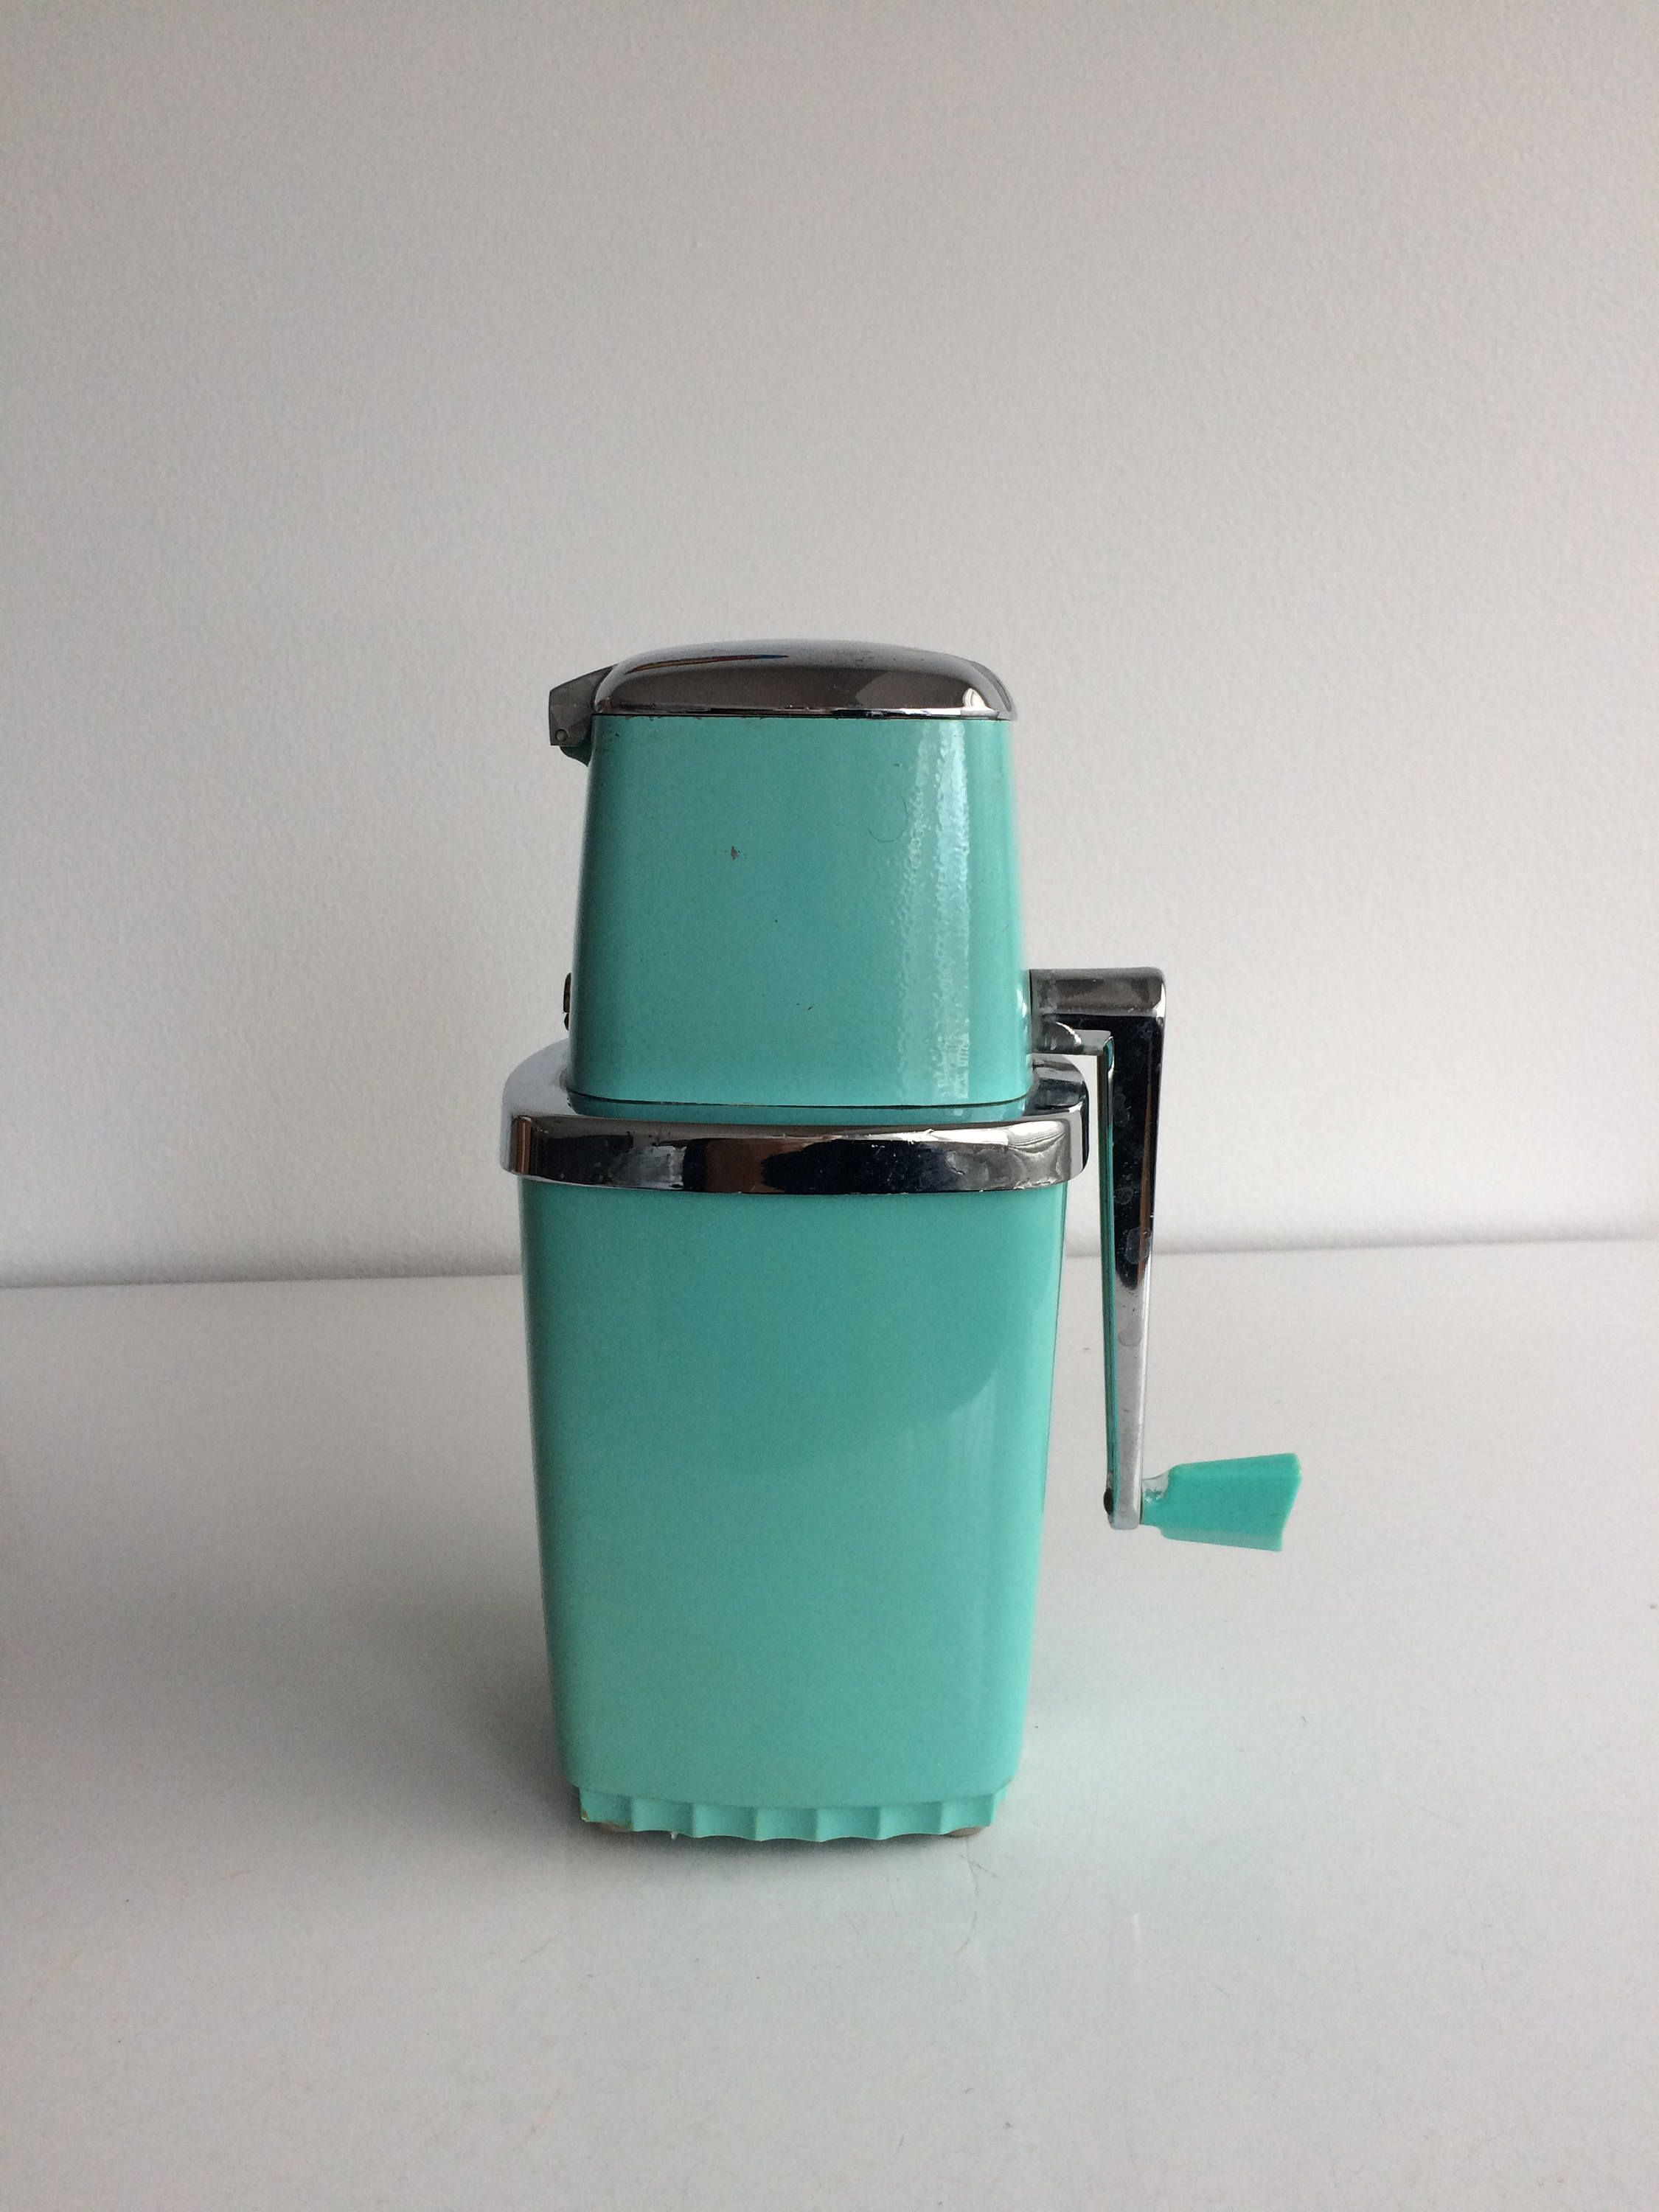 Teal Kitchen Appliances How To Organize My Vintage Ice Crusher Maid Of Honor Chopper Turquoise Blue Appliance By Thesuburbanpicker On Etsy